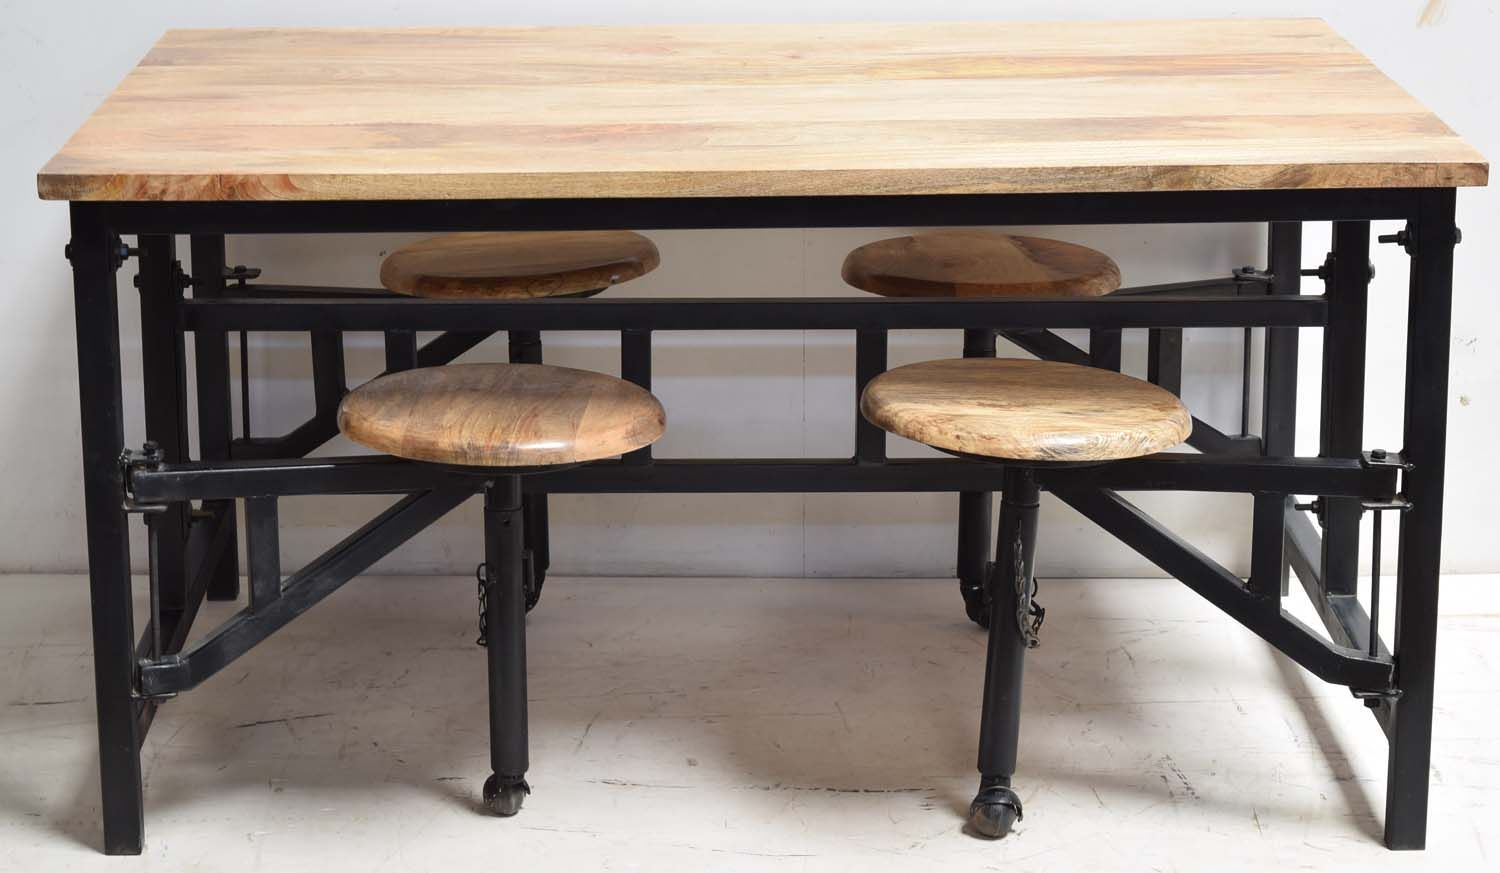 Industrial Canteen Table 4 Seat Folding Ckd Furniture Vintage Industrial Furniture